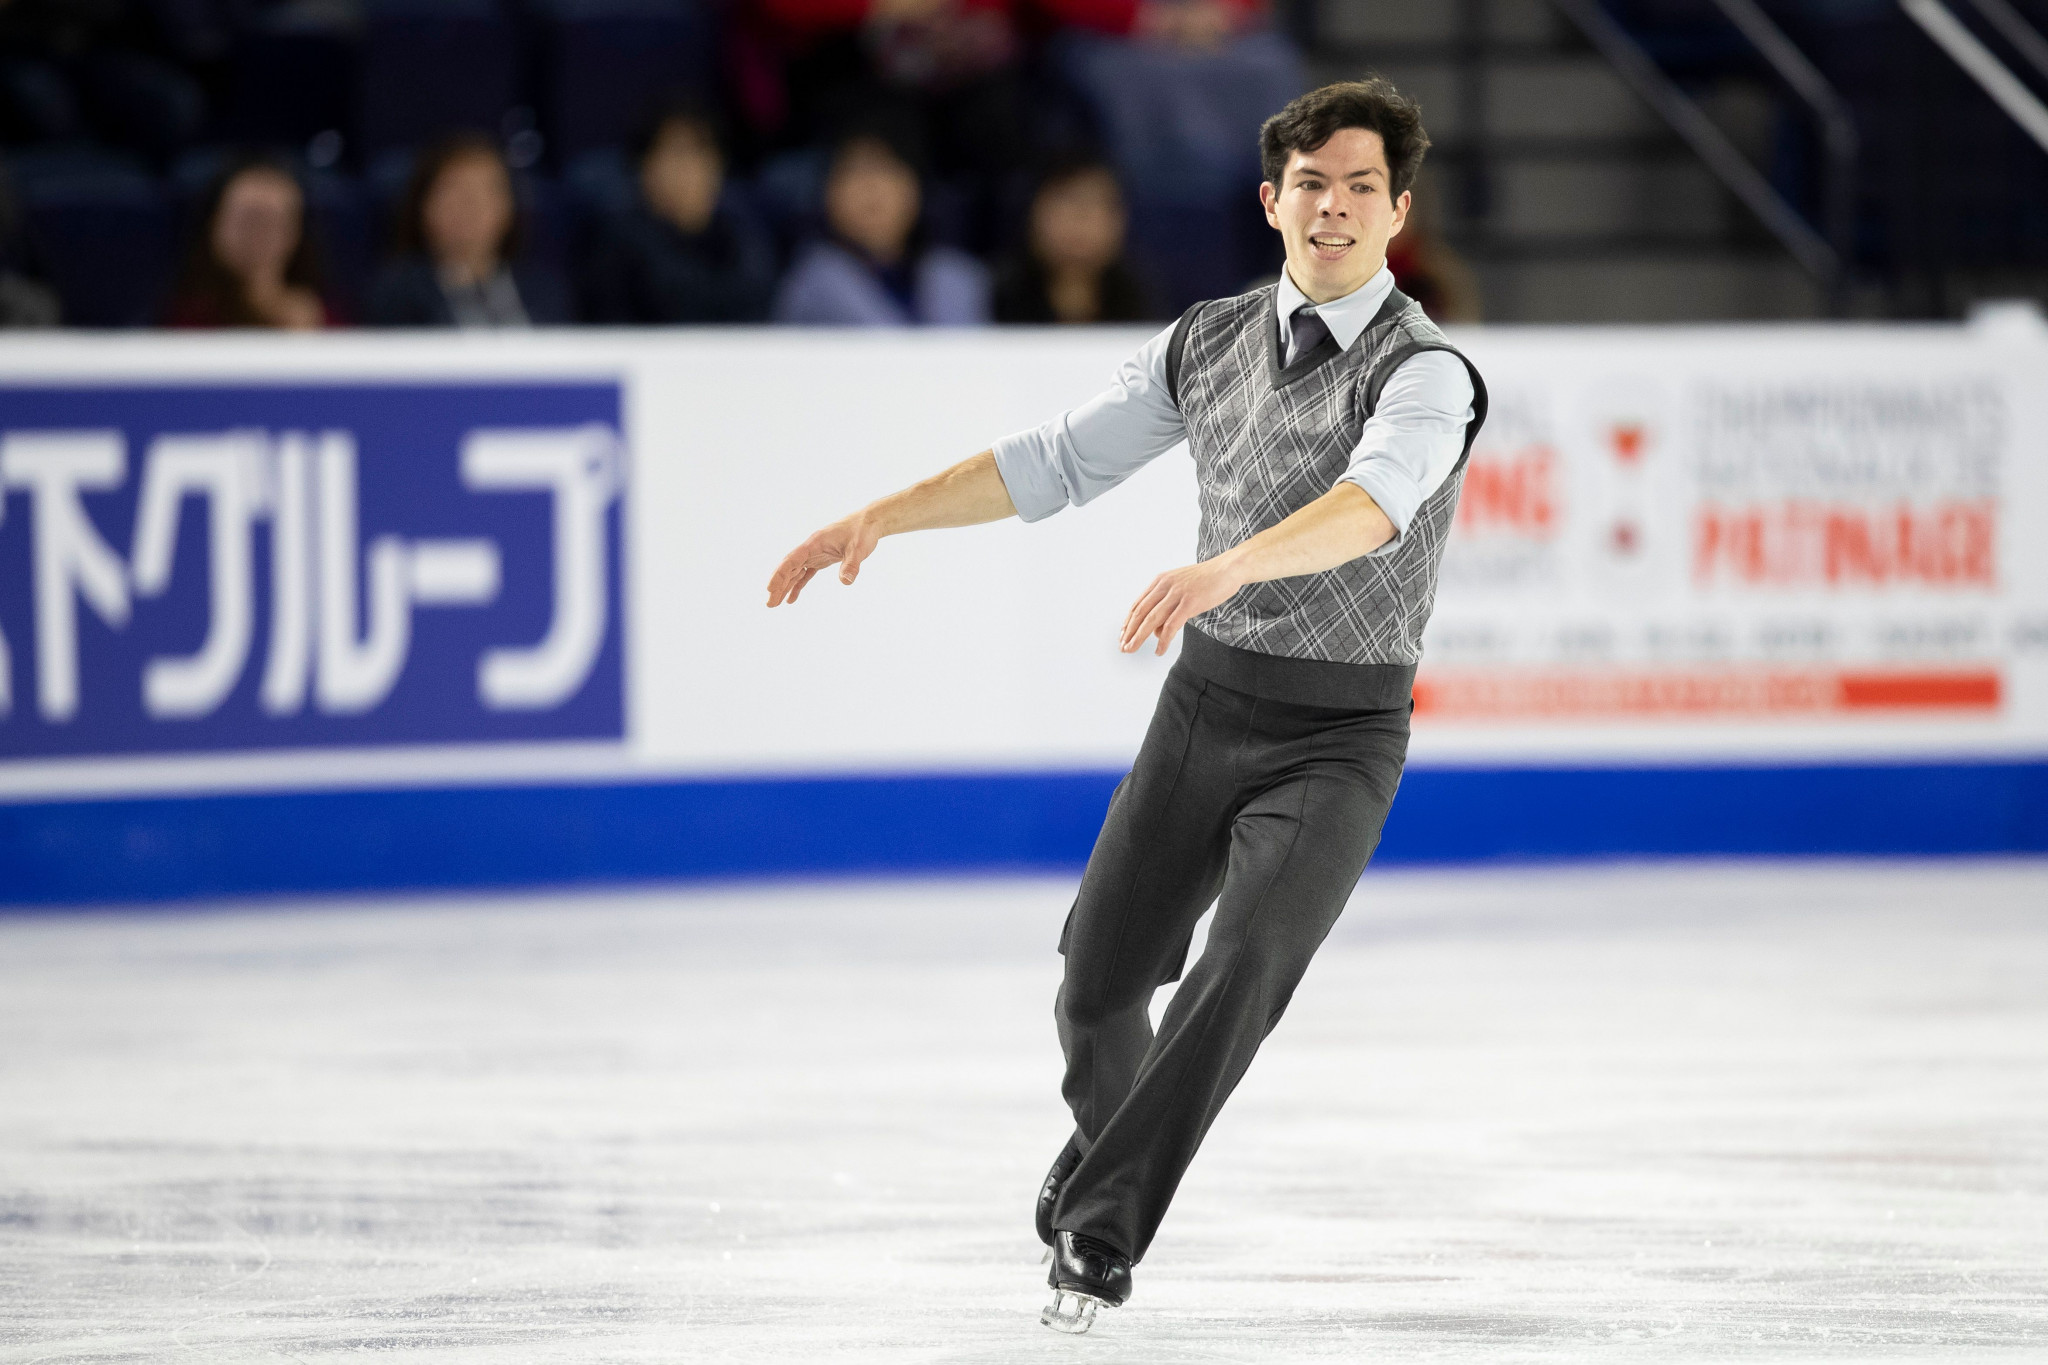 Home favourite Messing tops men's short programme standings on opening day of Skate Canada